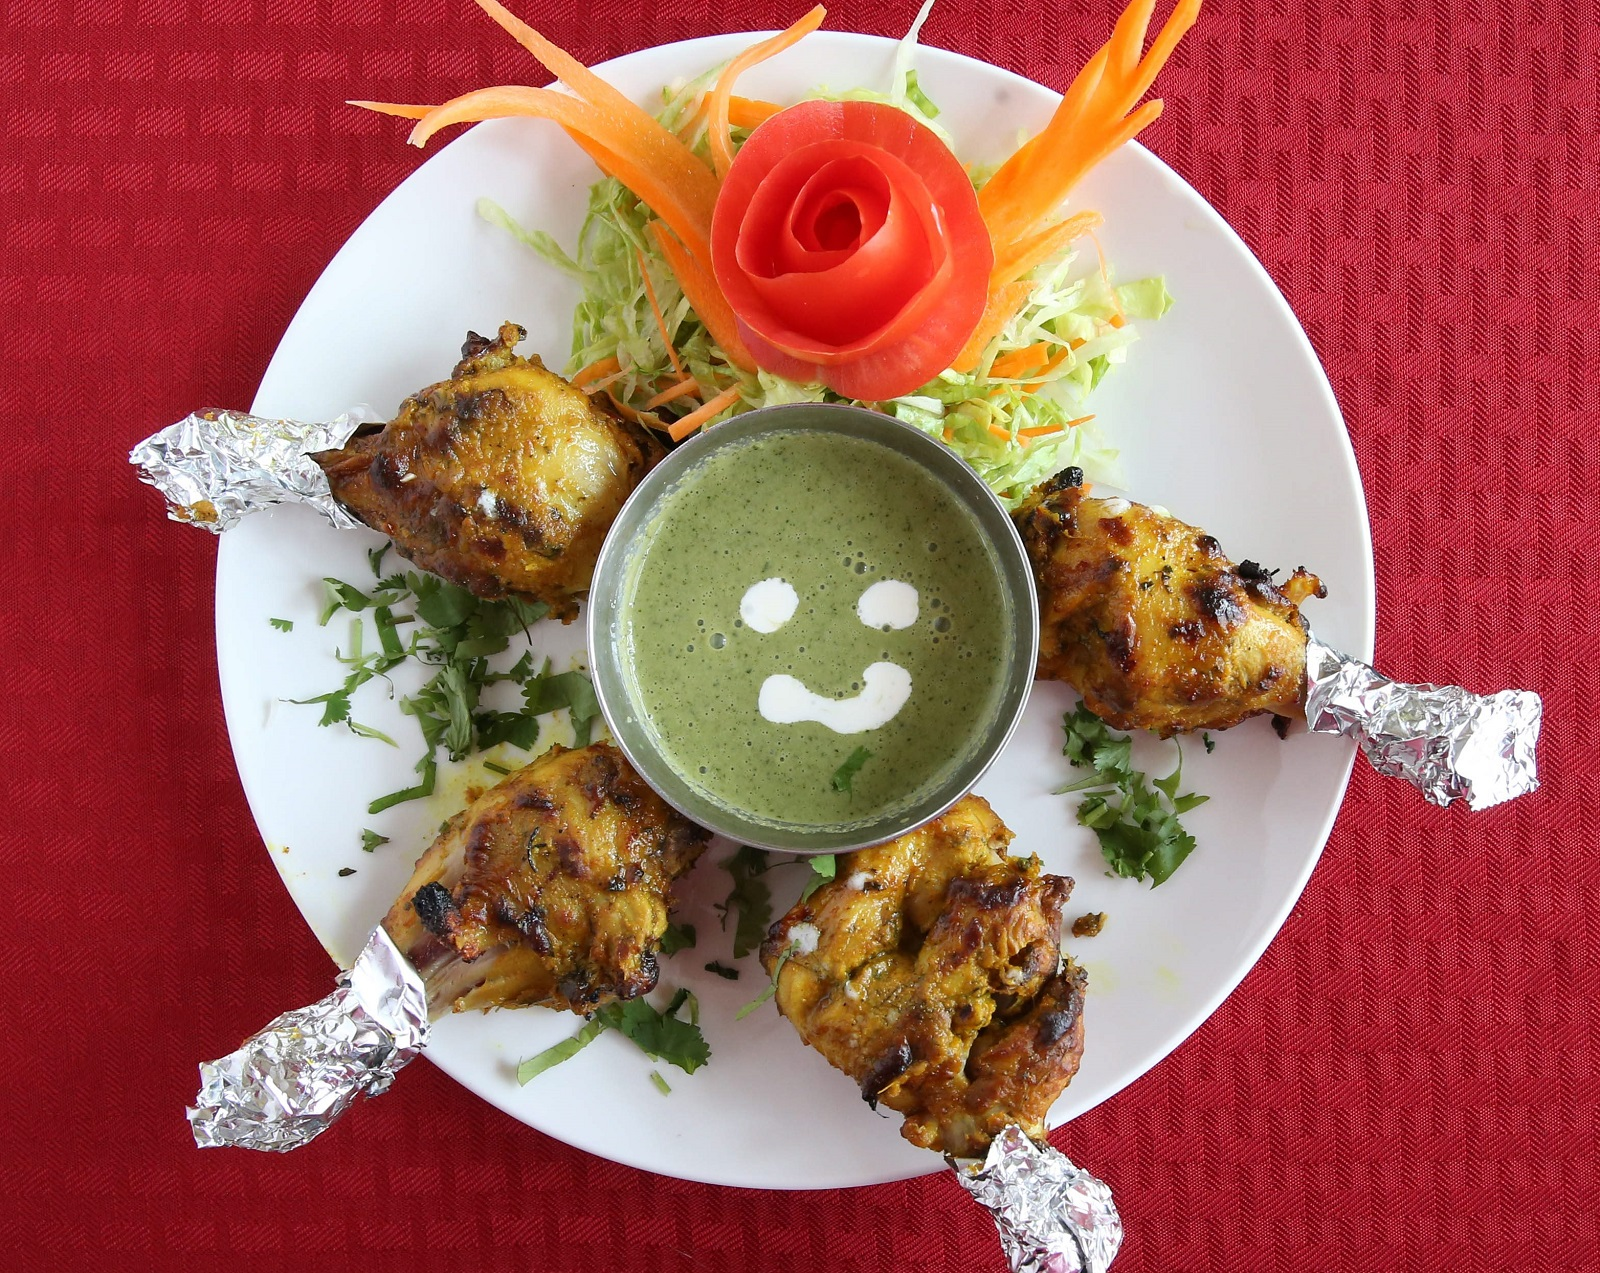 Hyderabad Biryani House's Thangdi Kabab is made with four chicken drumsticks, marinated in yogurt, garlic, ginger and fresh ground spices. (Sharon Cantillon/Buffalo News)